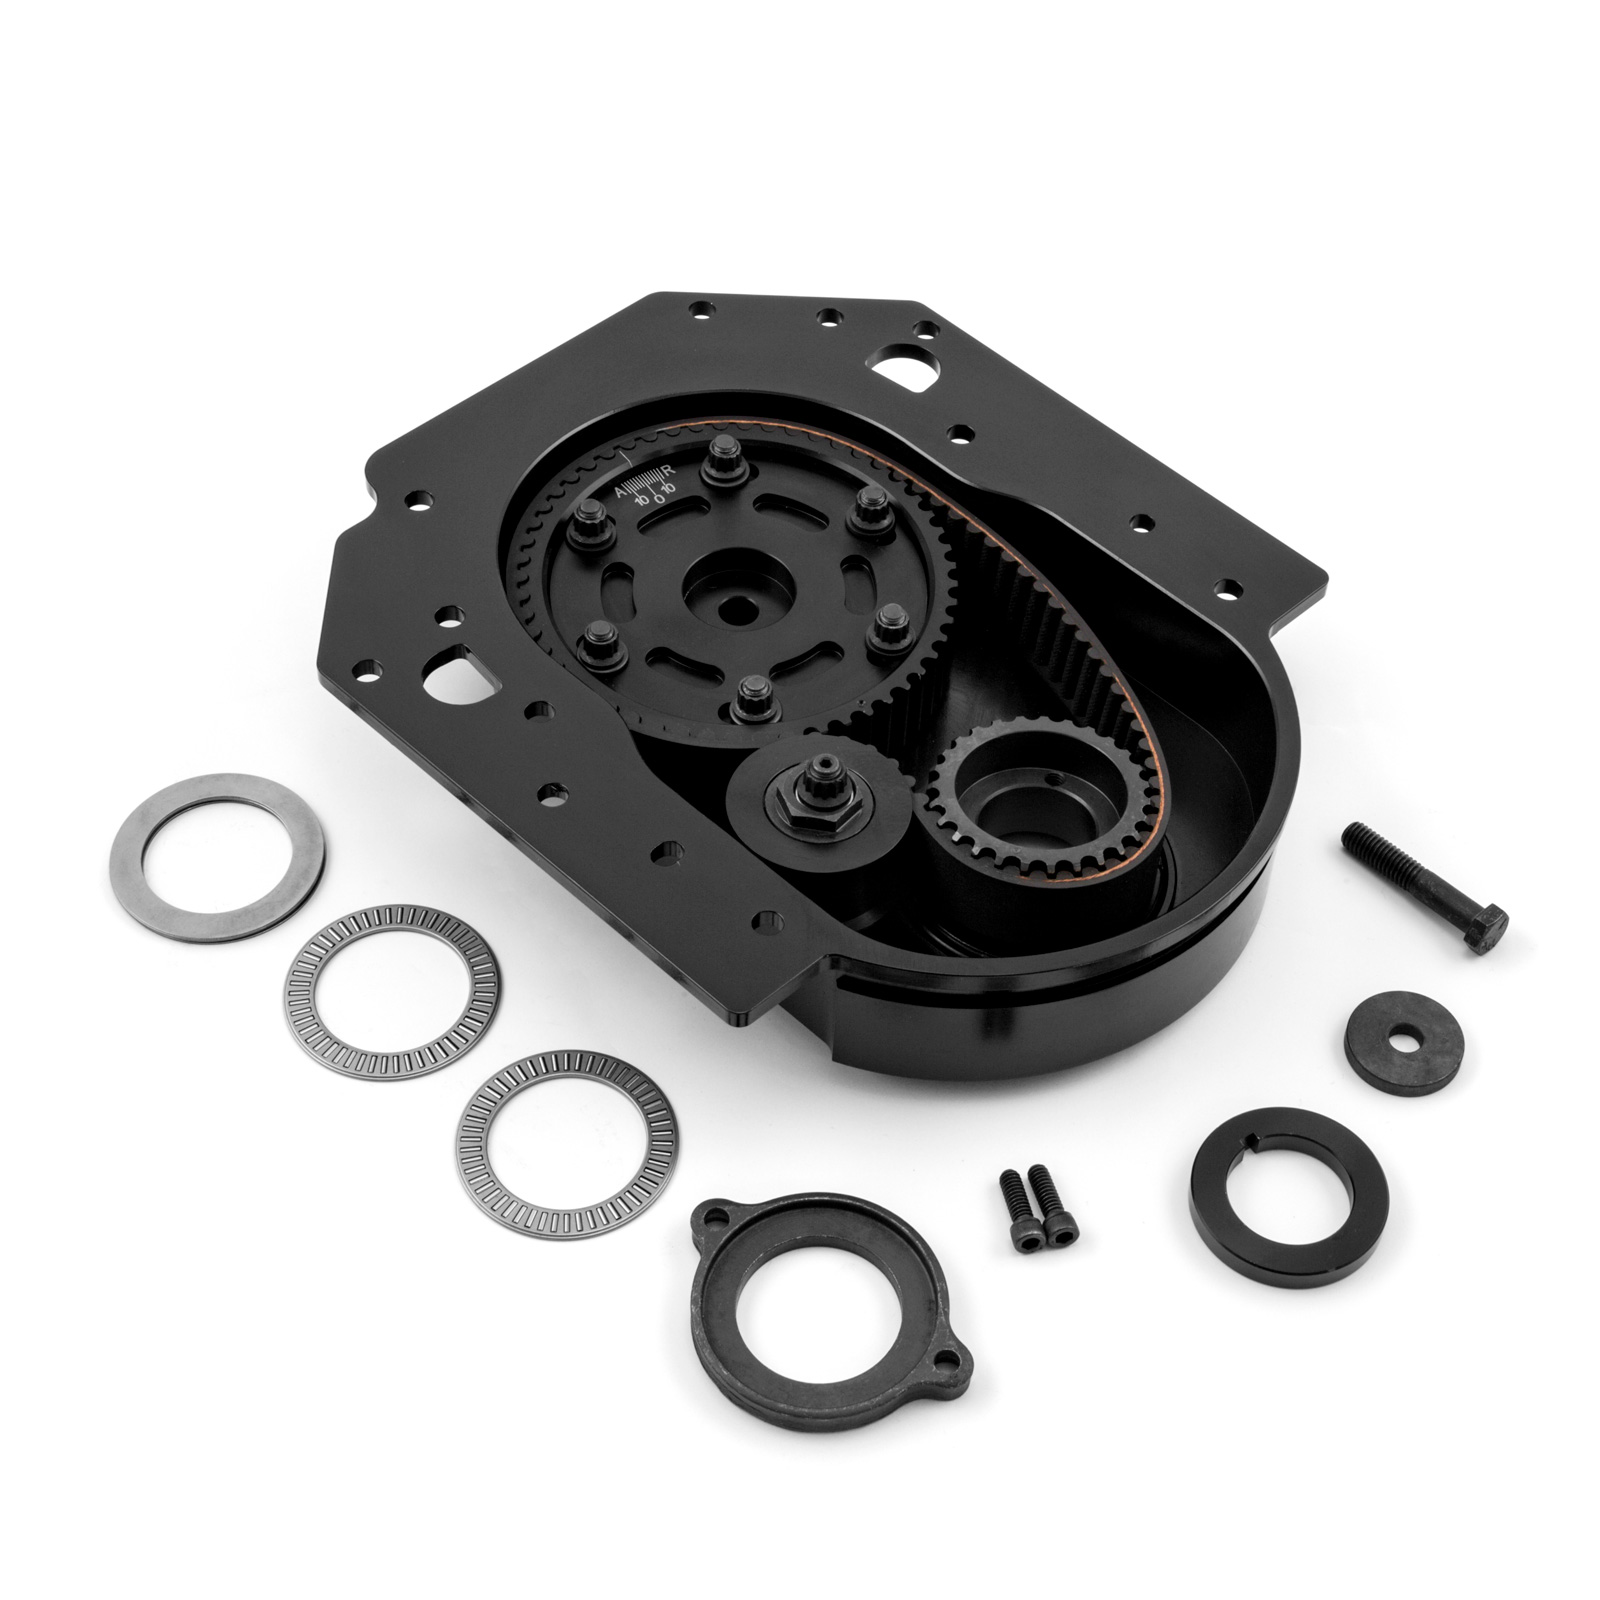 Ford 302 351C Cleveland Standard Cam Height Timing Belt Drive Kit - Black